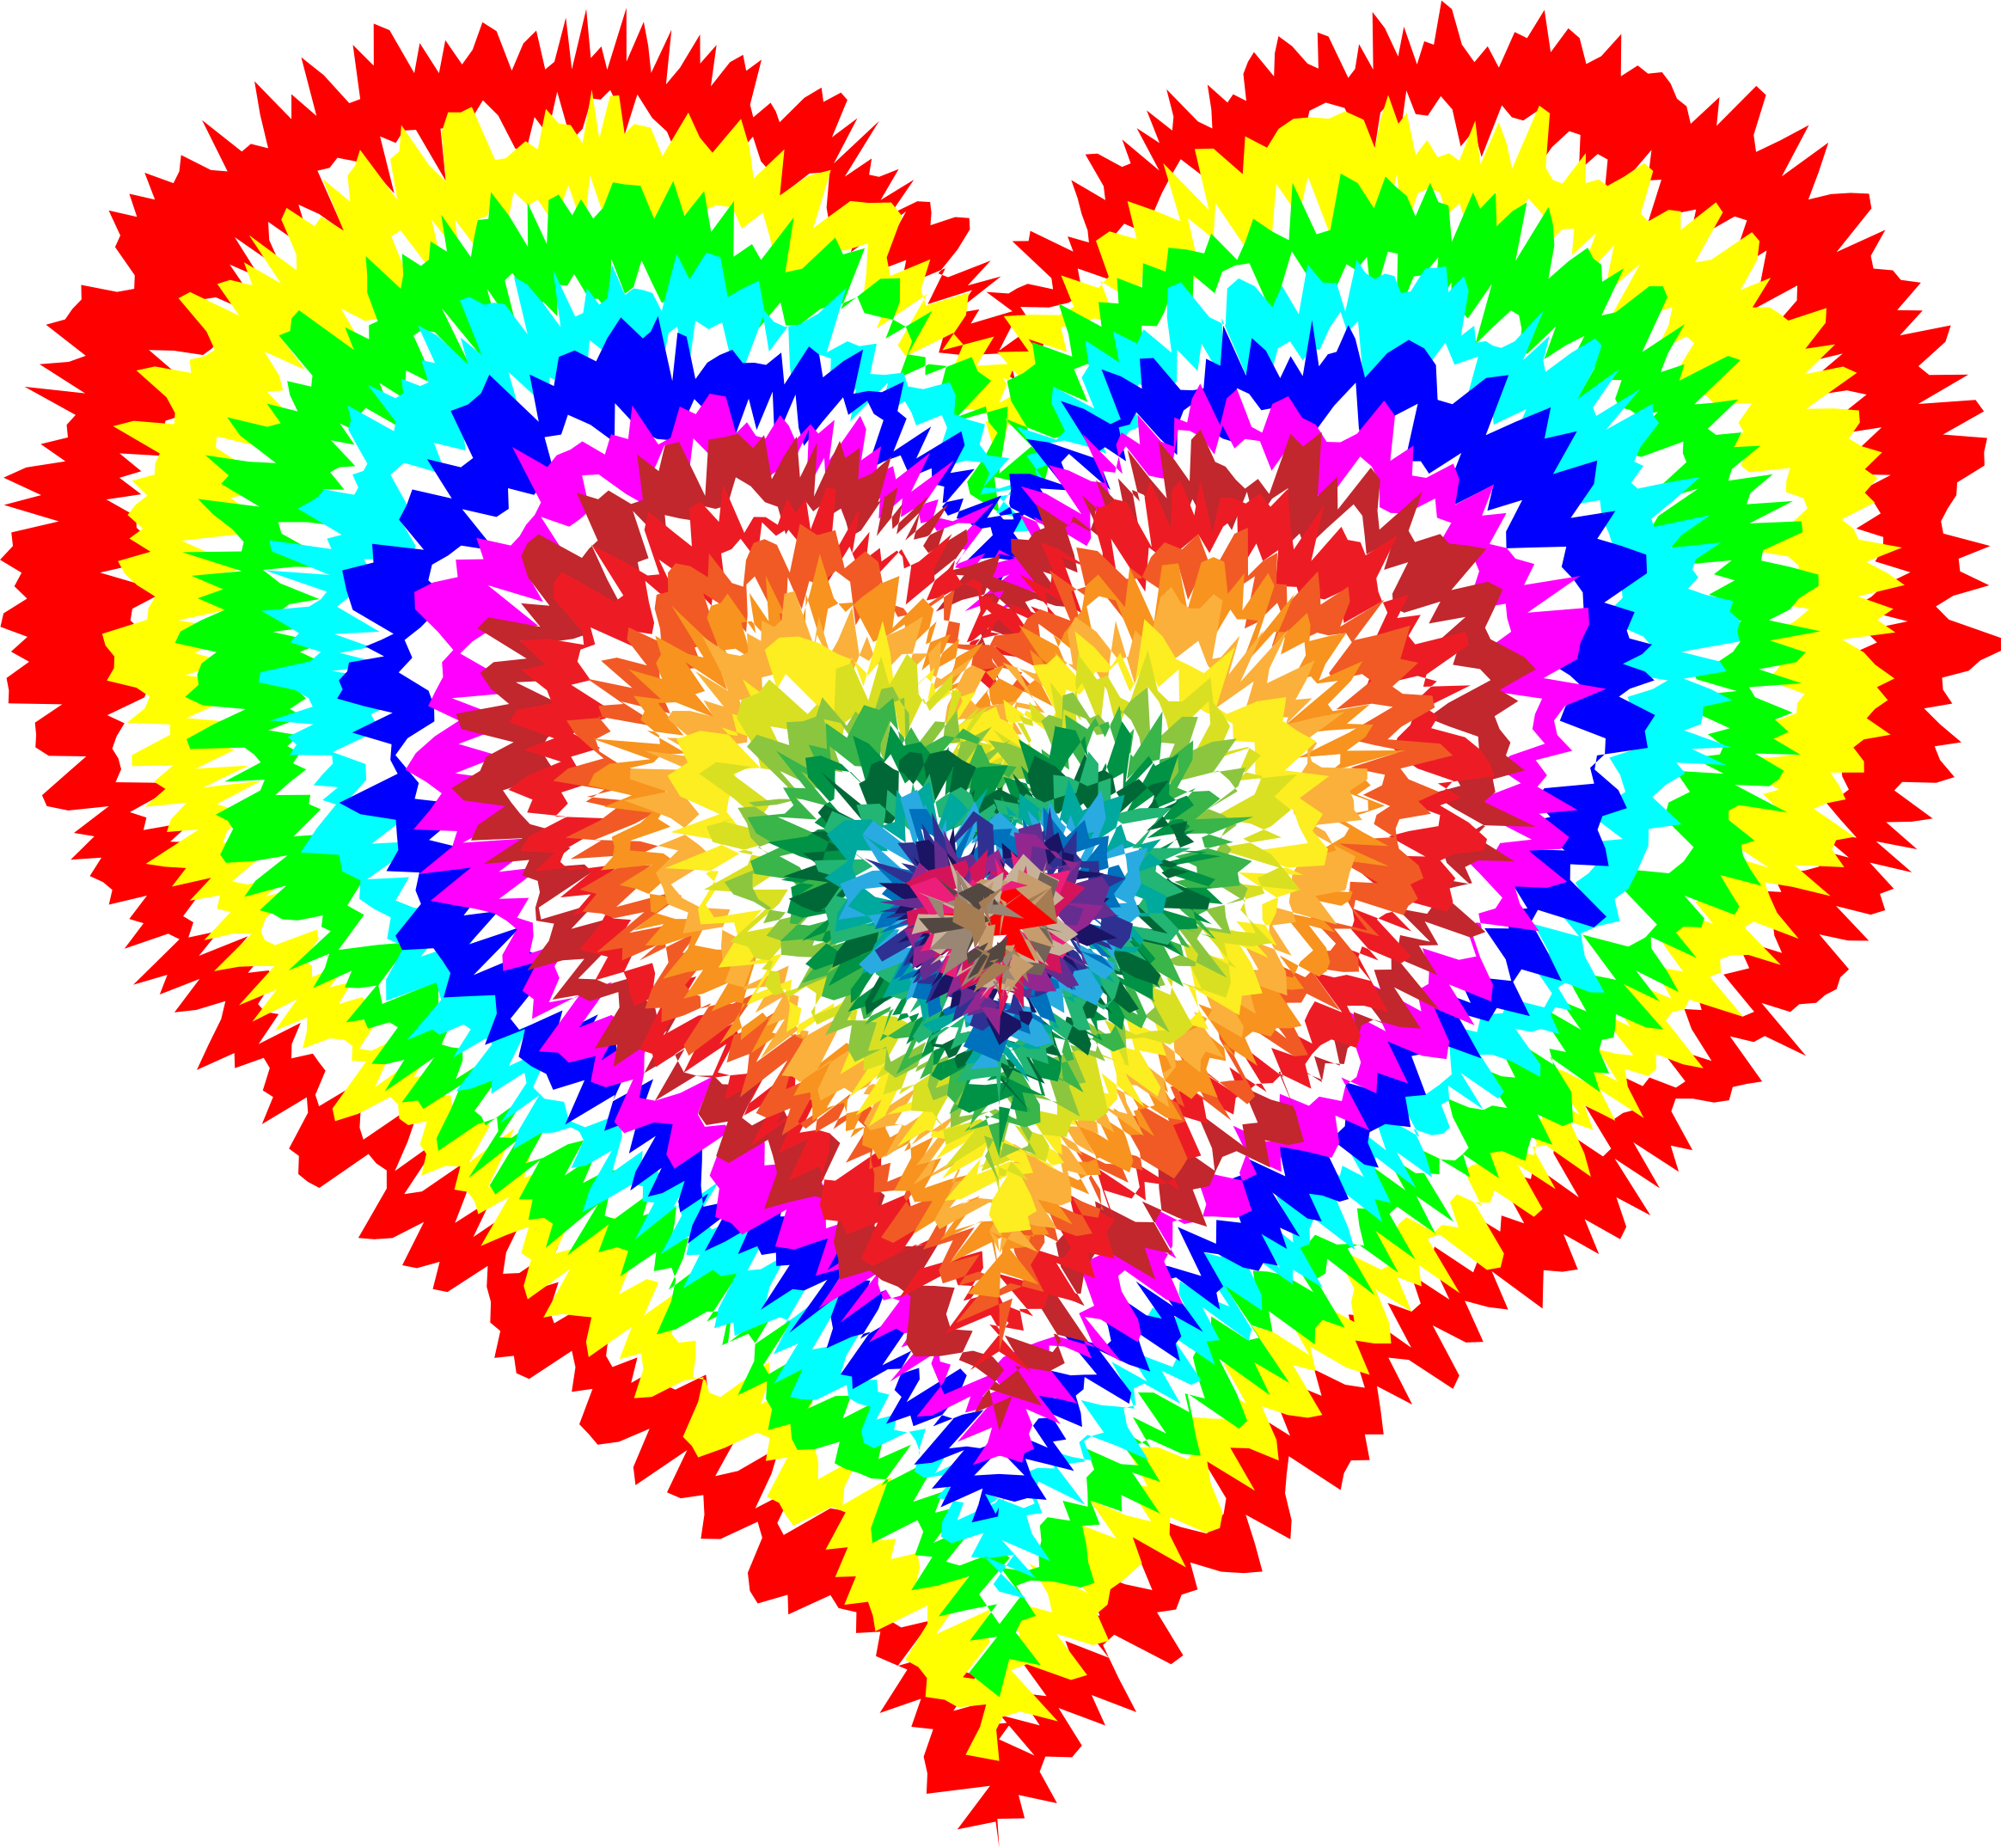 clipart tie dye heart look at all the pretty colors pinterest rh pinterest com tie dye shirt clipart tie dye clip art background